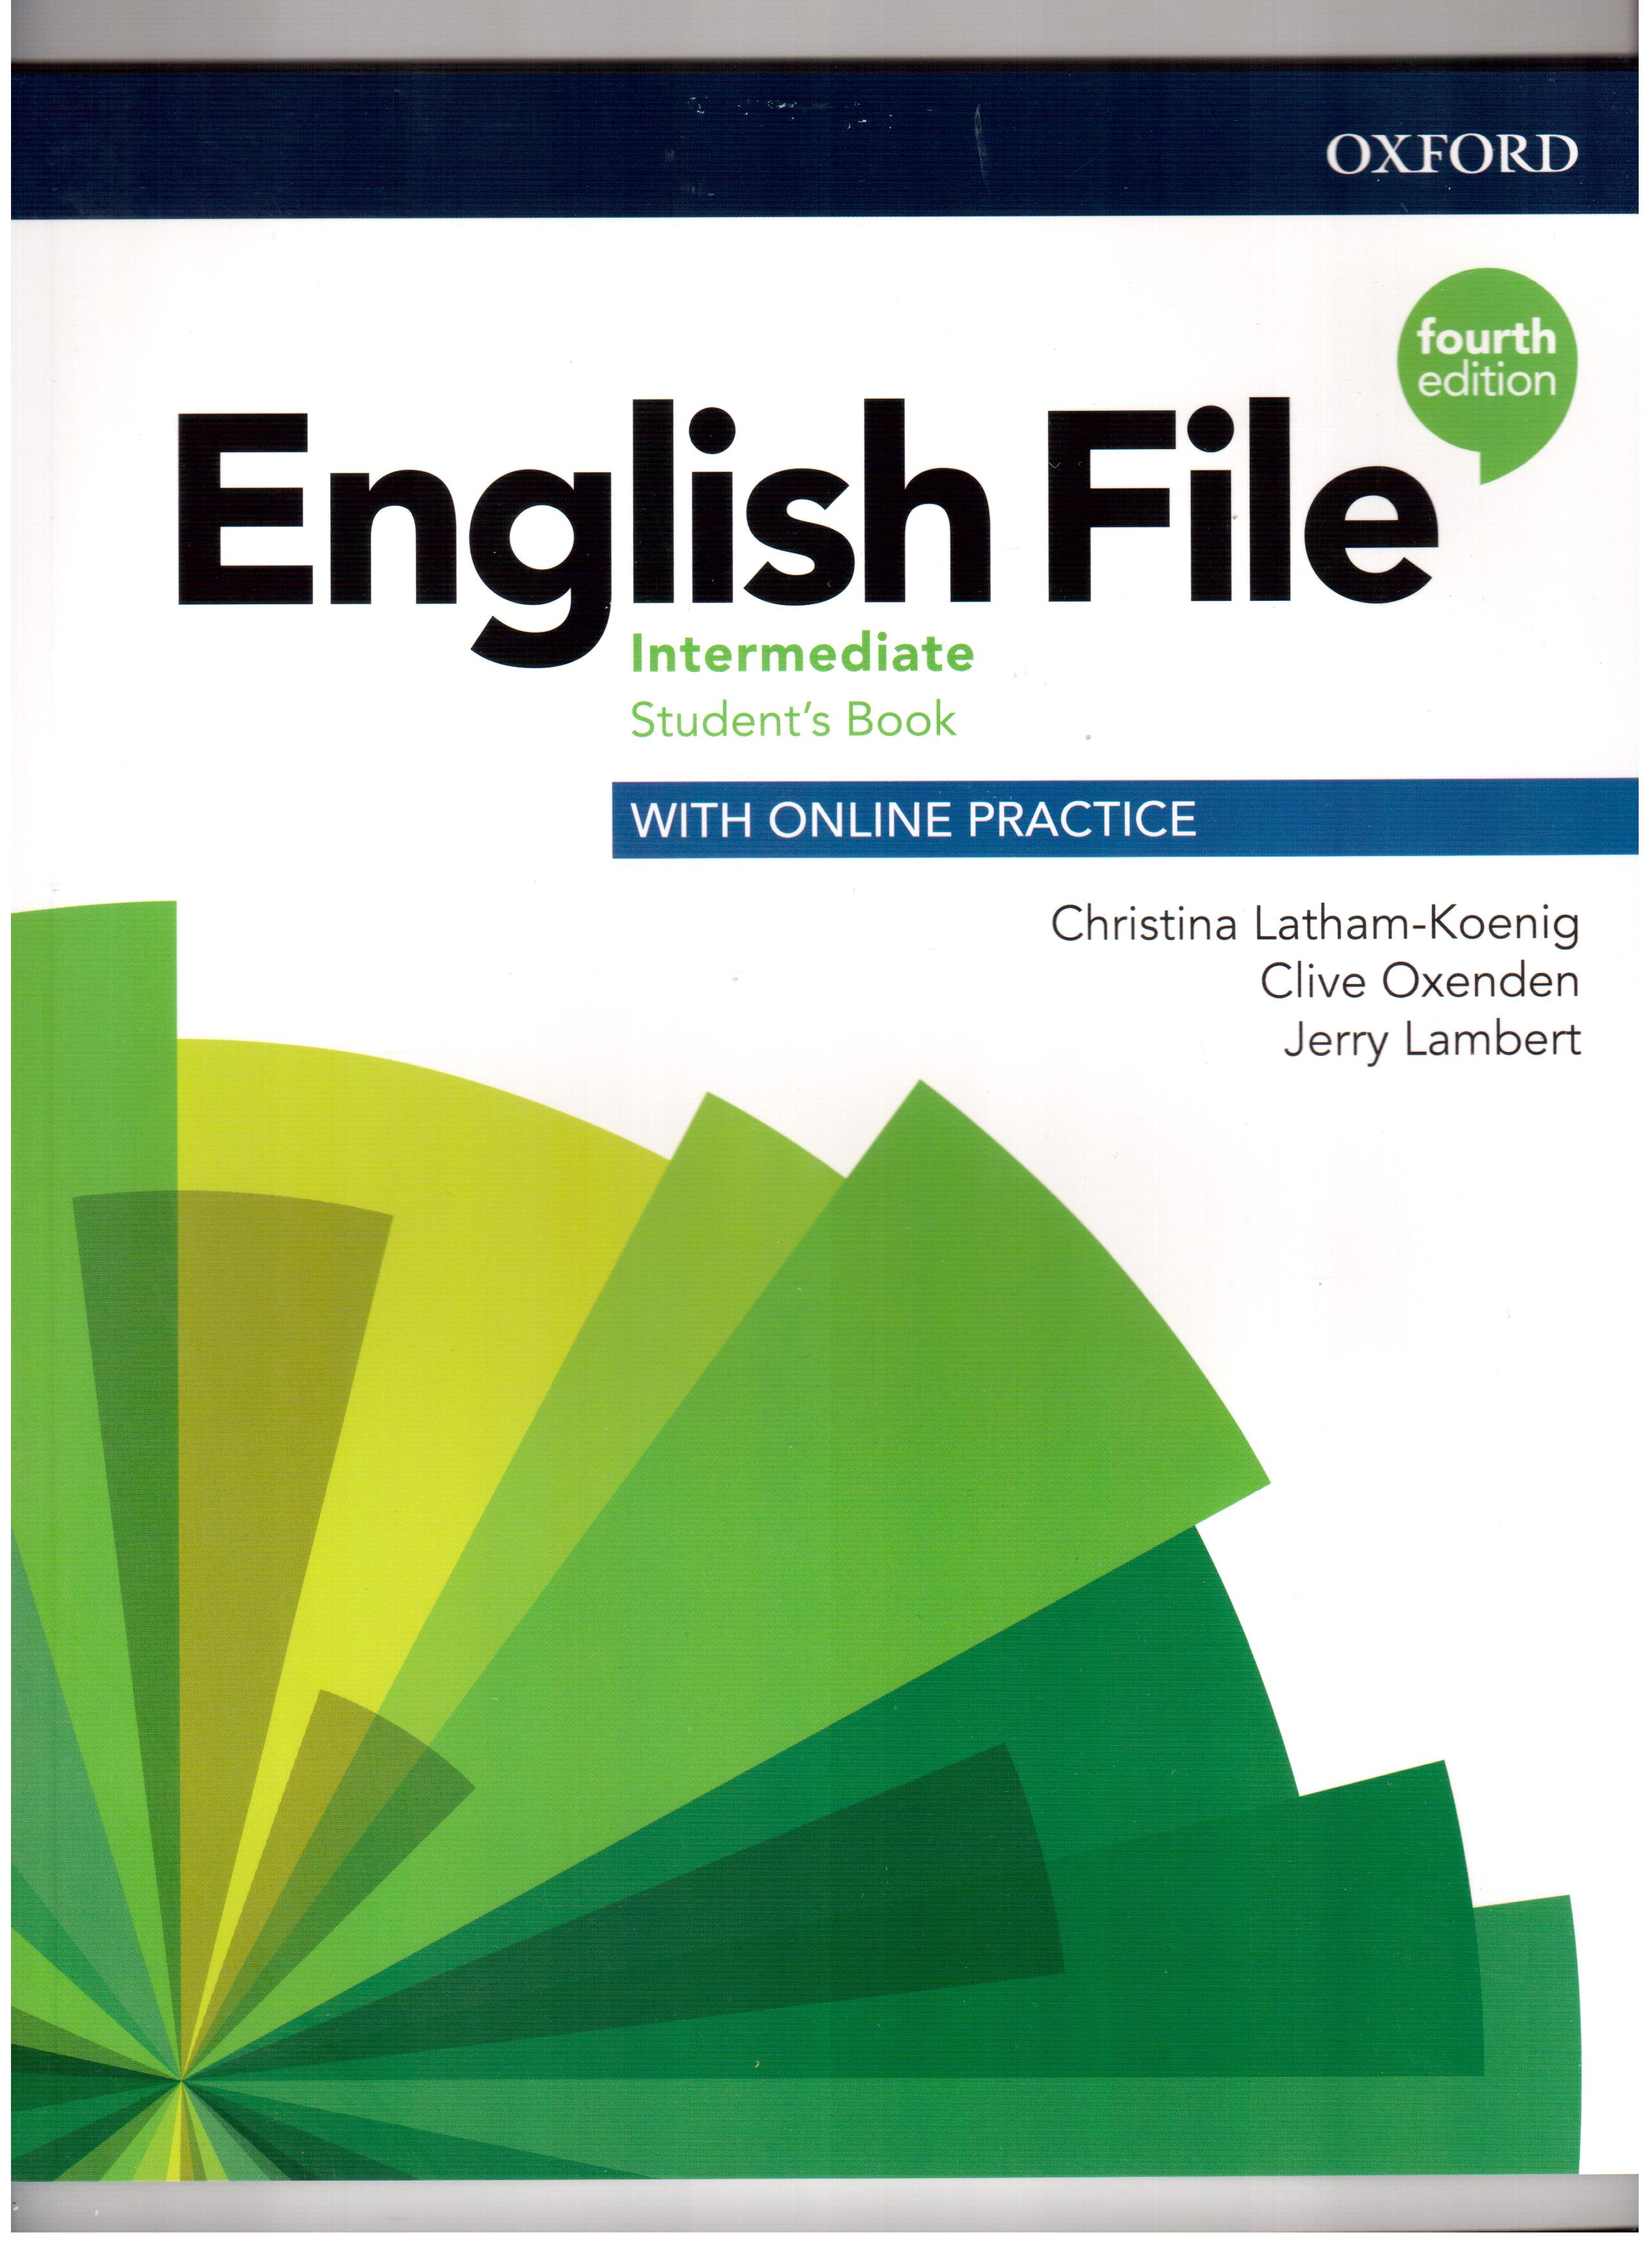 English File 4th Edition Intermediate Student's Book with Online Practice